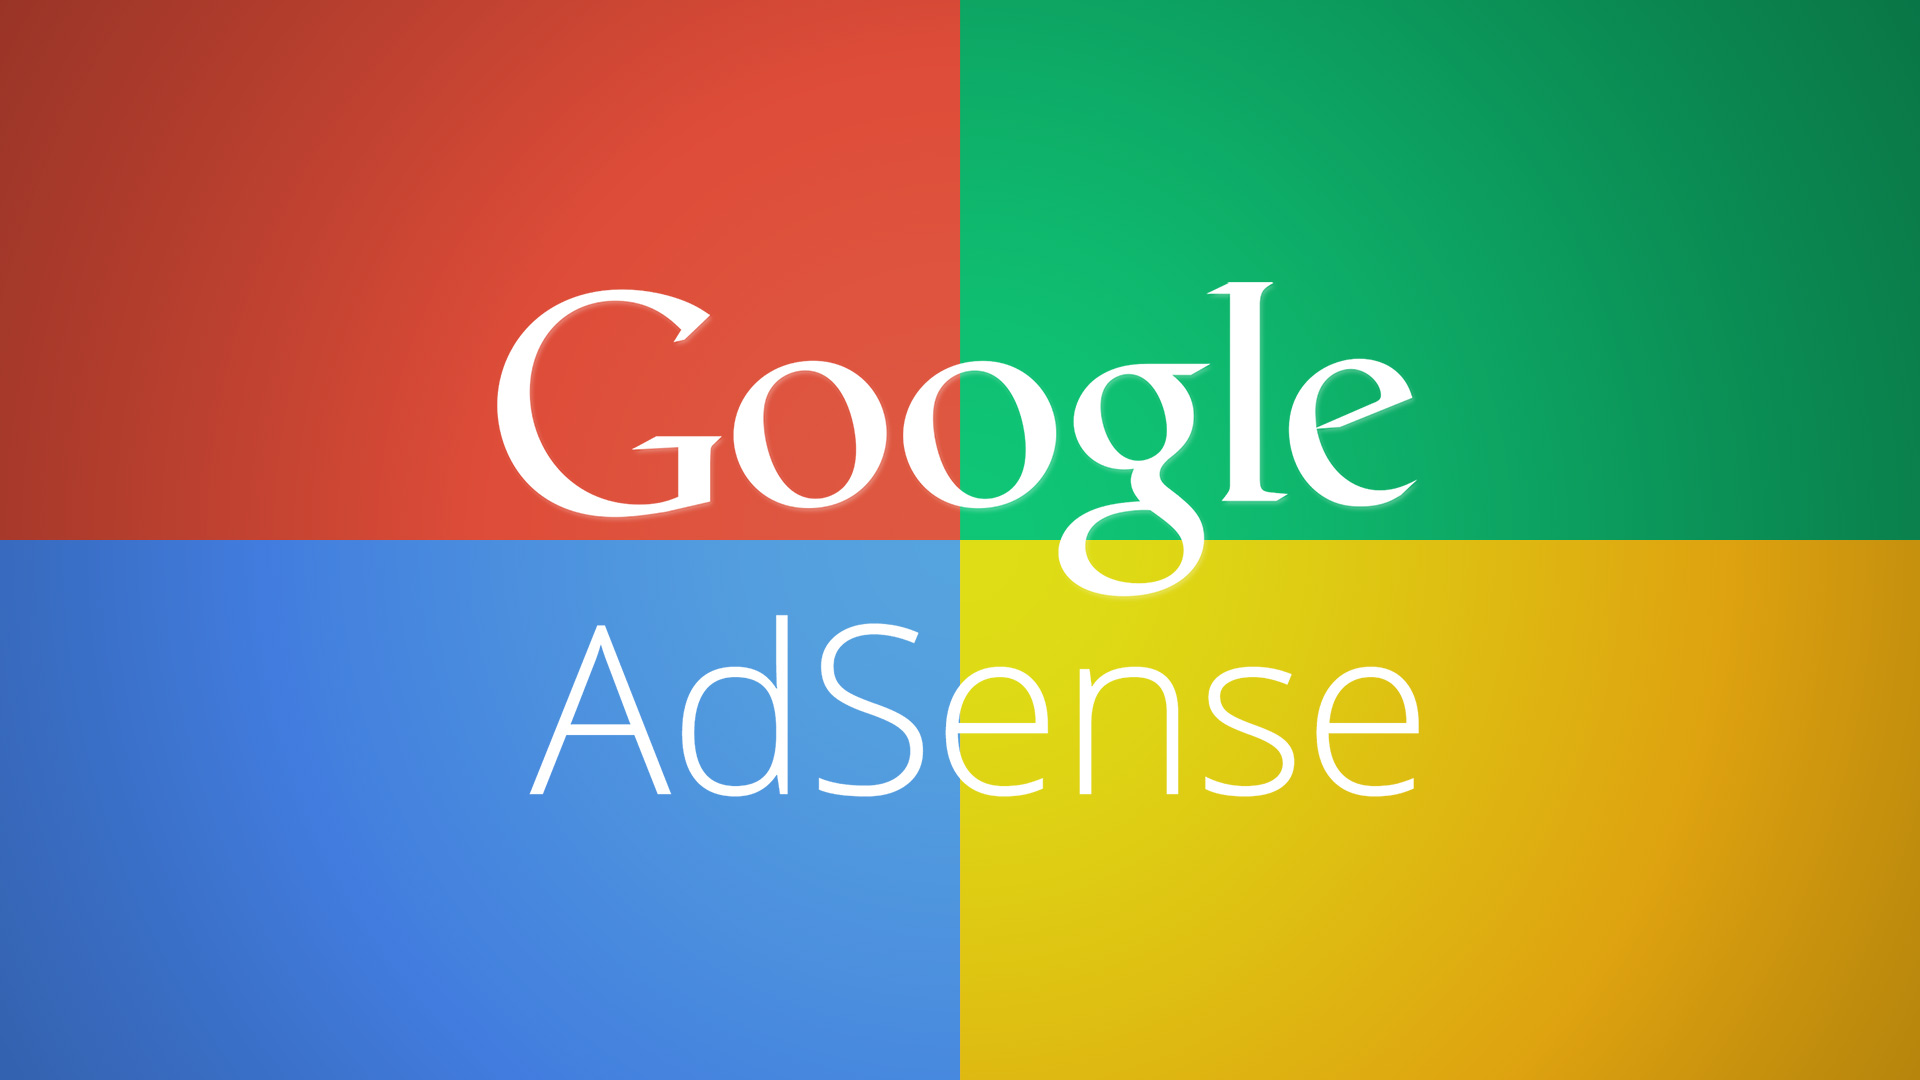 AdSense Don'ts: How to Keep Your AdSense Account Safe